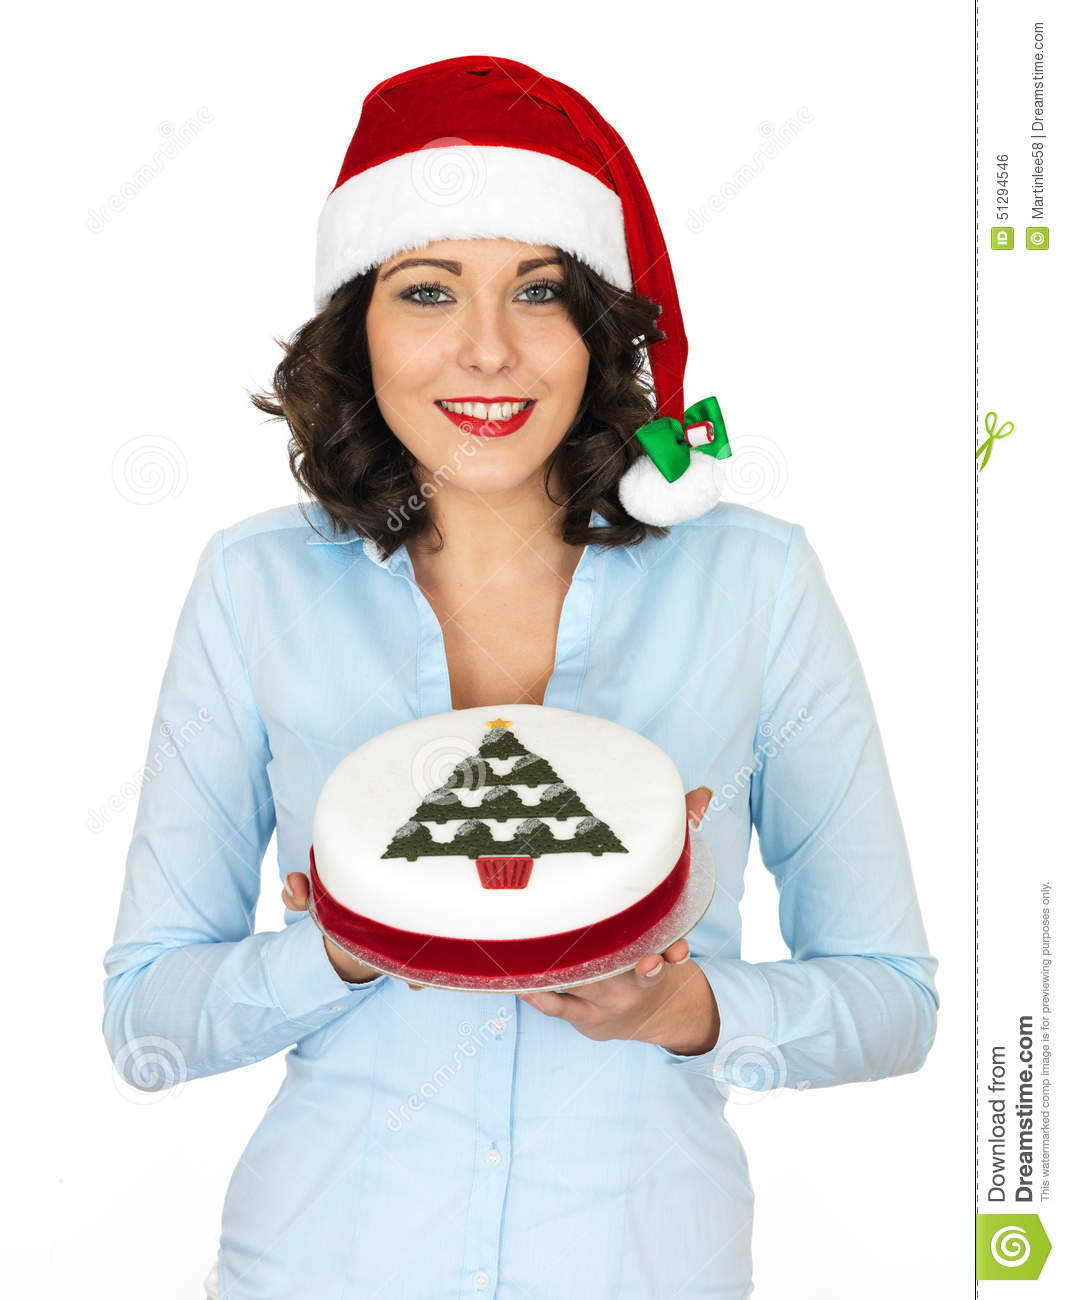 ad27bdbdee7f8d A DSLR royalty free image, festive happy young woman smiling, with dark  hair, holding a christmas cake with white icing and christmas tree on top,  ...